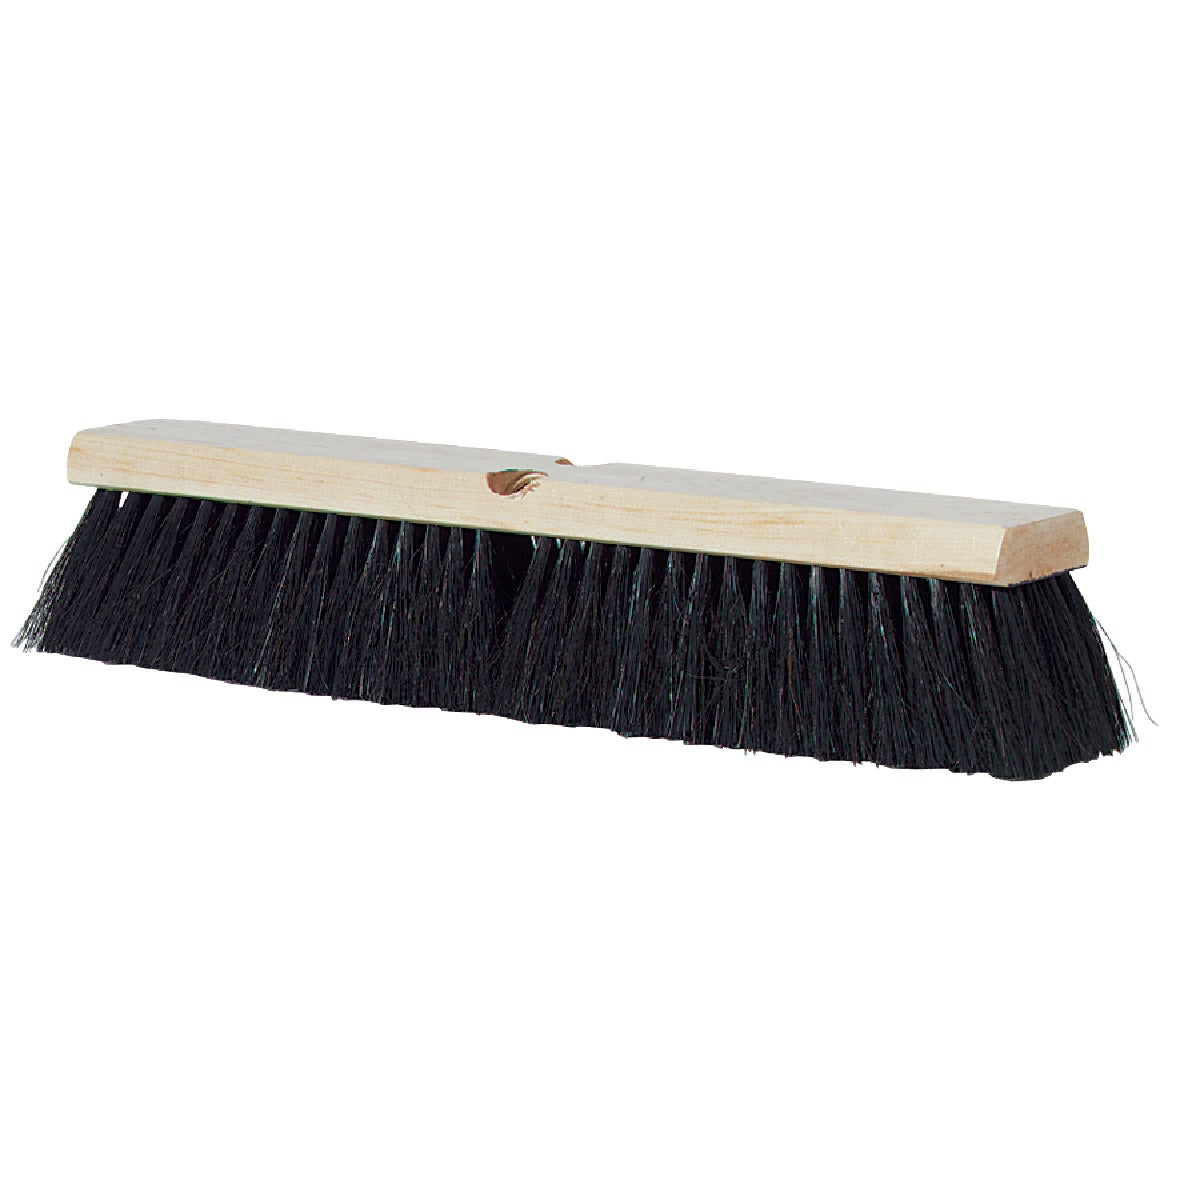 "18"" TAMPICO PUSH BROOM"